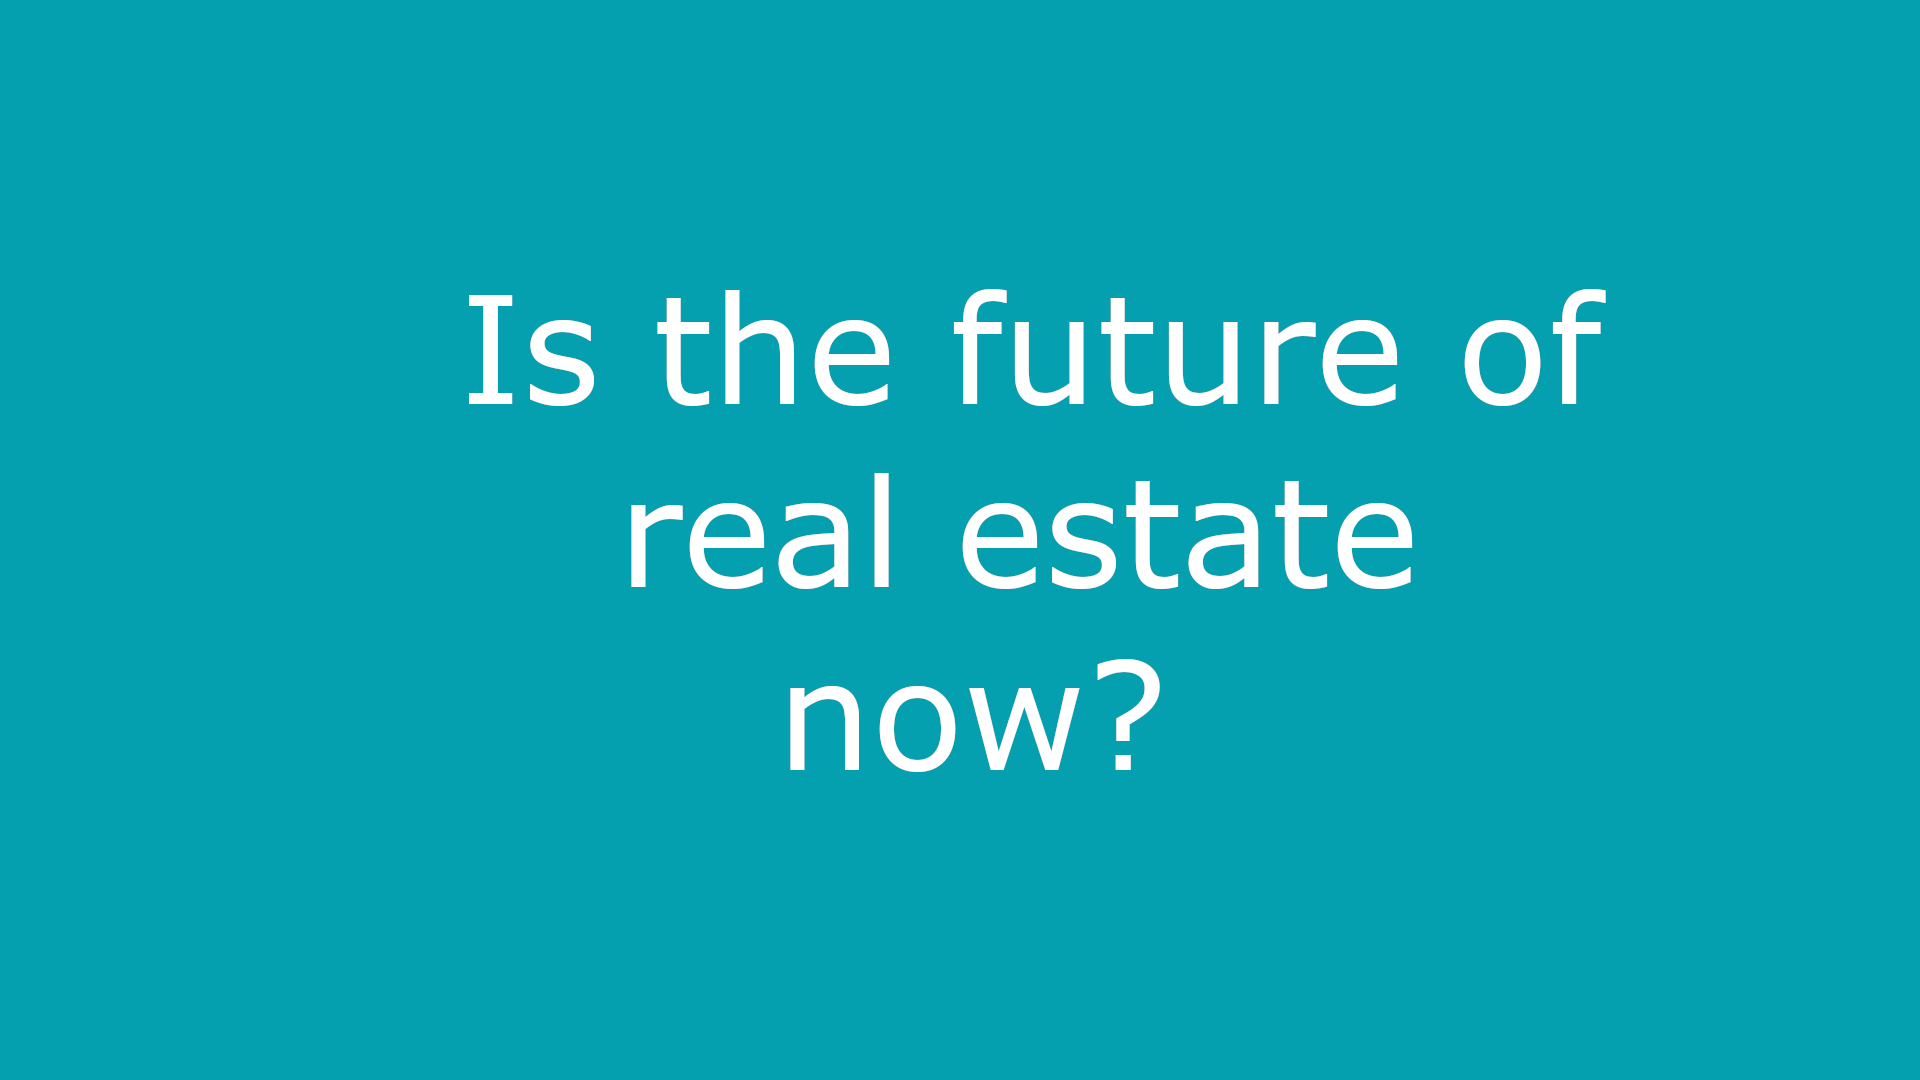 Is the future of real estate now?